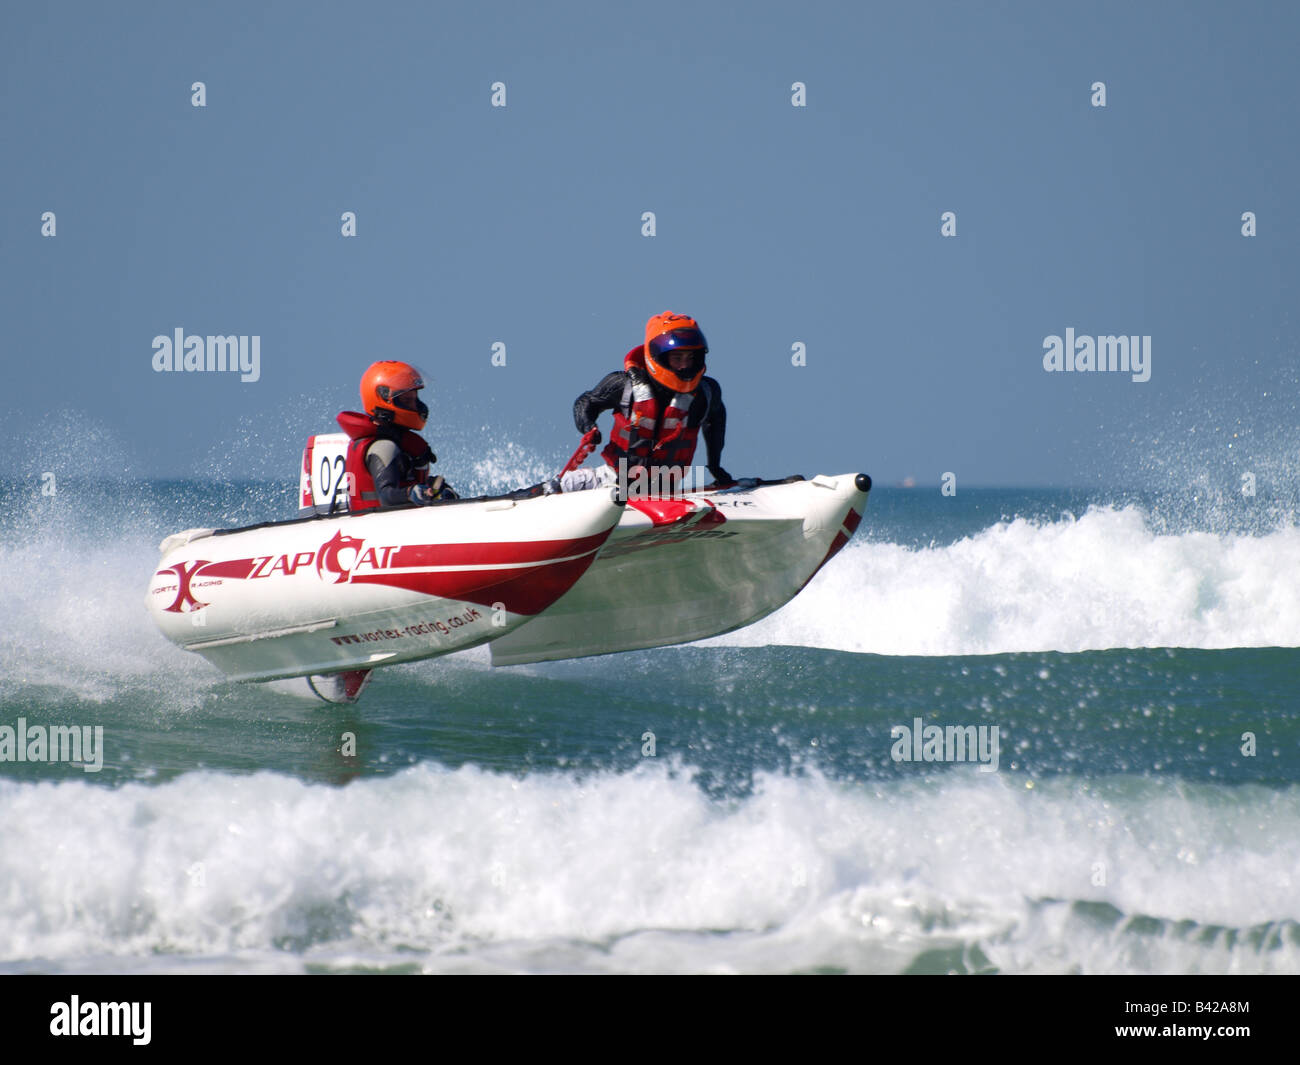 Action from the 2008 Zapcat Powerboat National Championship finale at Watergate Bay, Cornwall - Stock Image